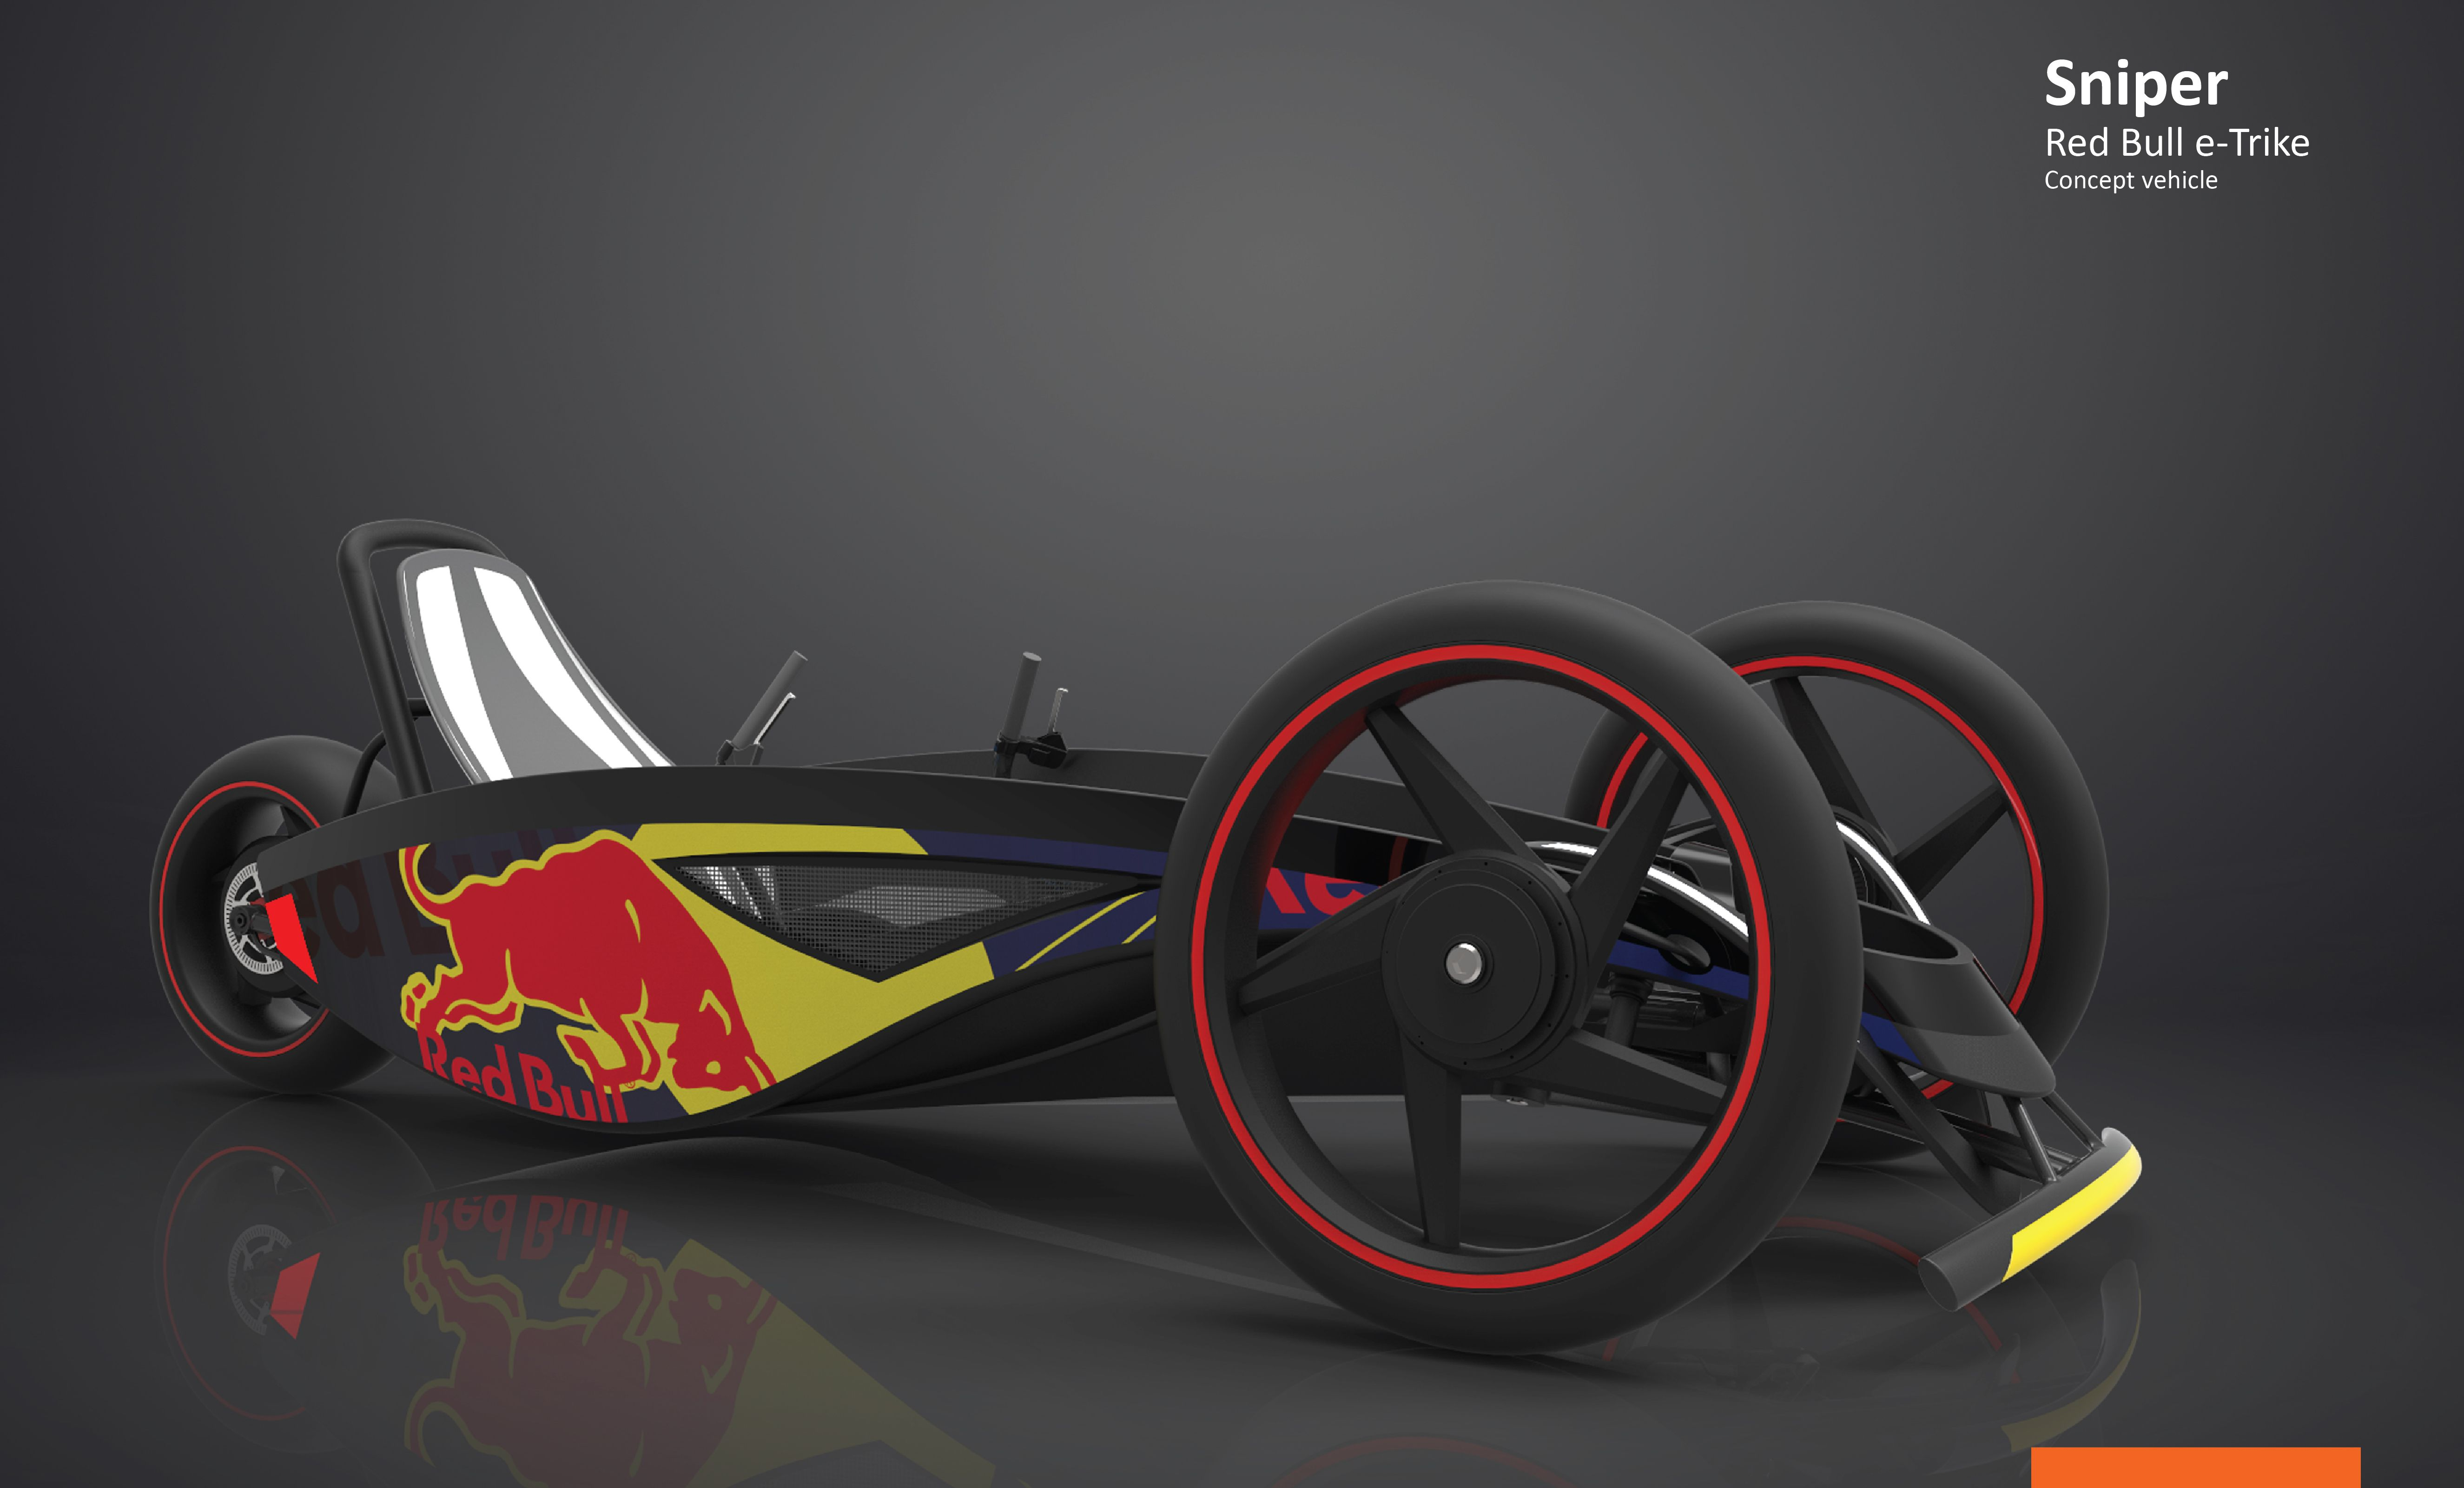 sniper concept is an electric trike born from the bones of. Black Bedroom Furniture Sets. Home Design Ideas